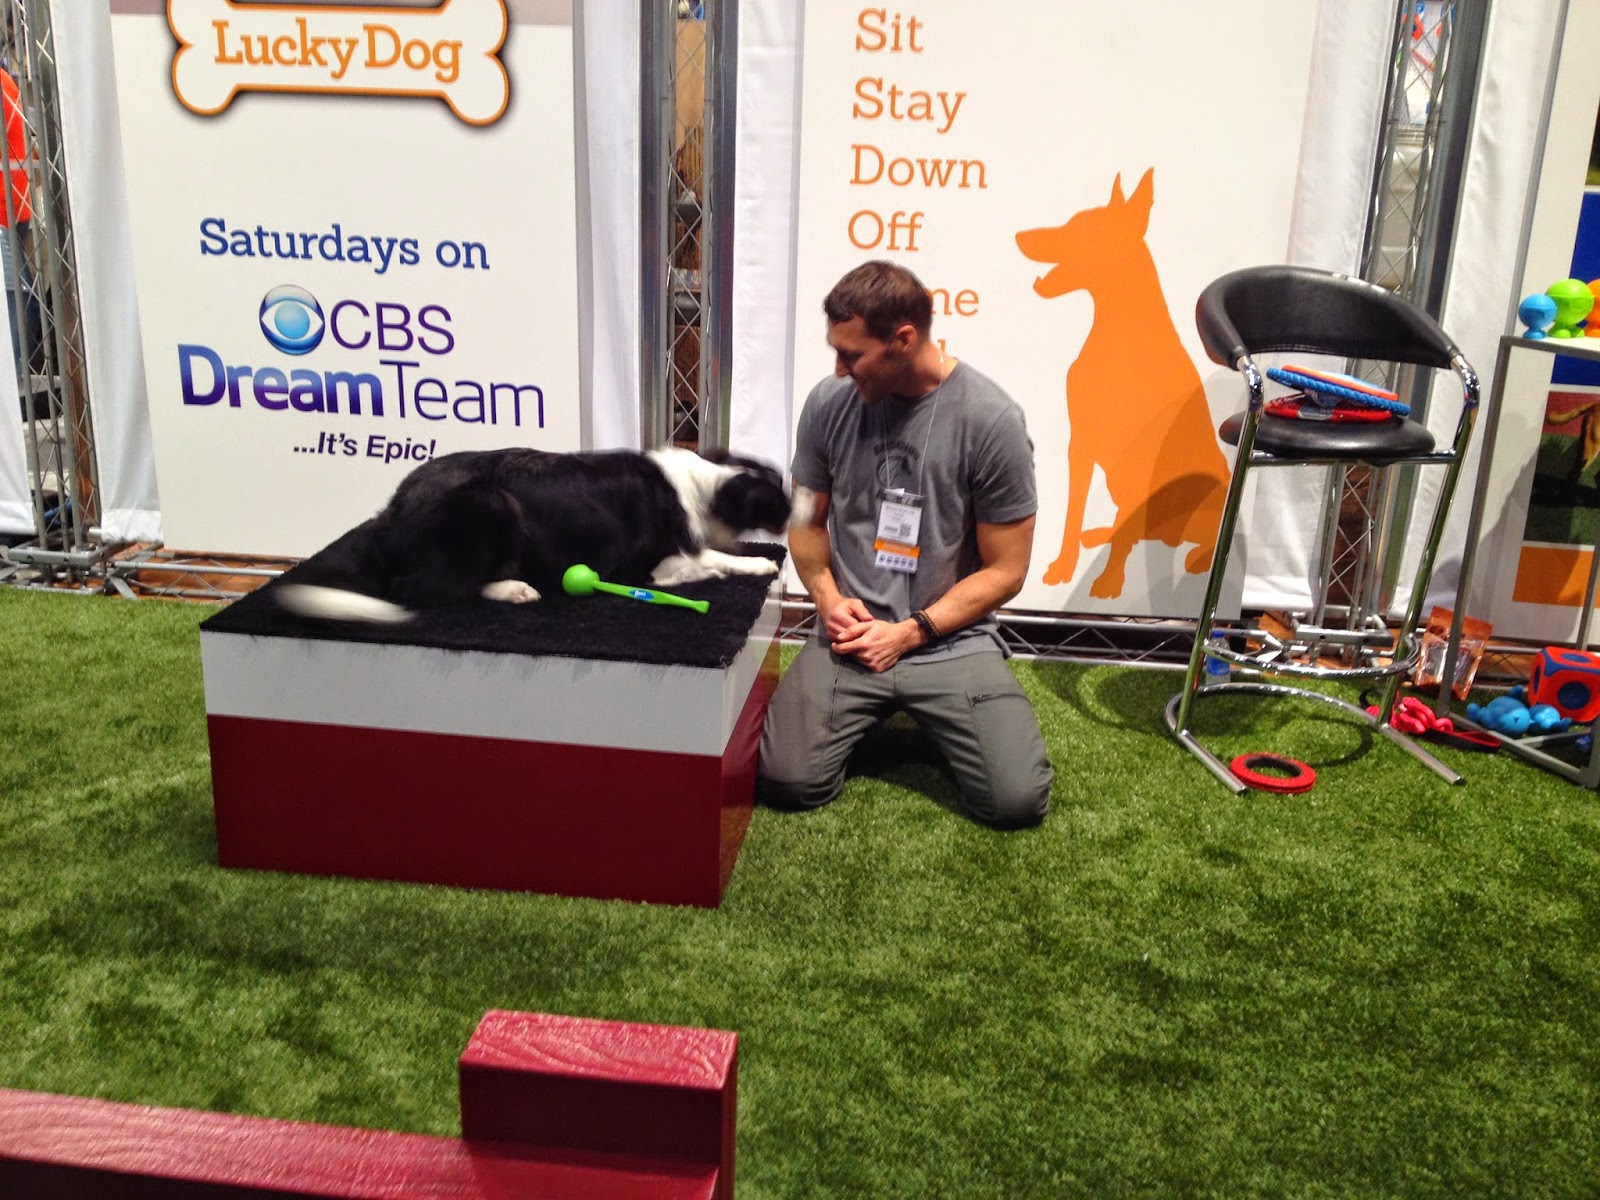 Life With Beagle: Global Pet Expo: Day 1 in photos